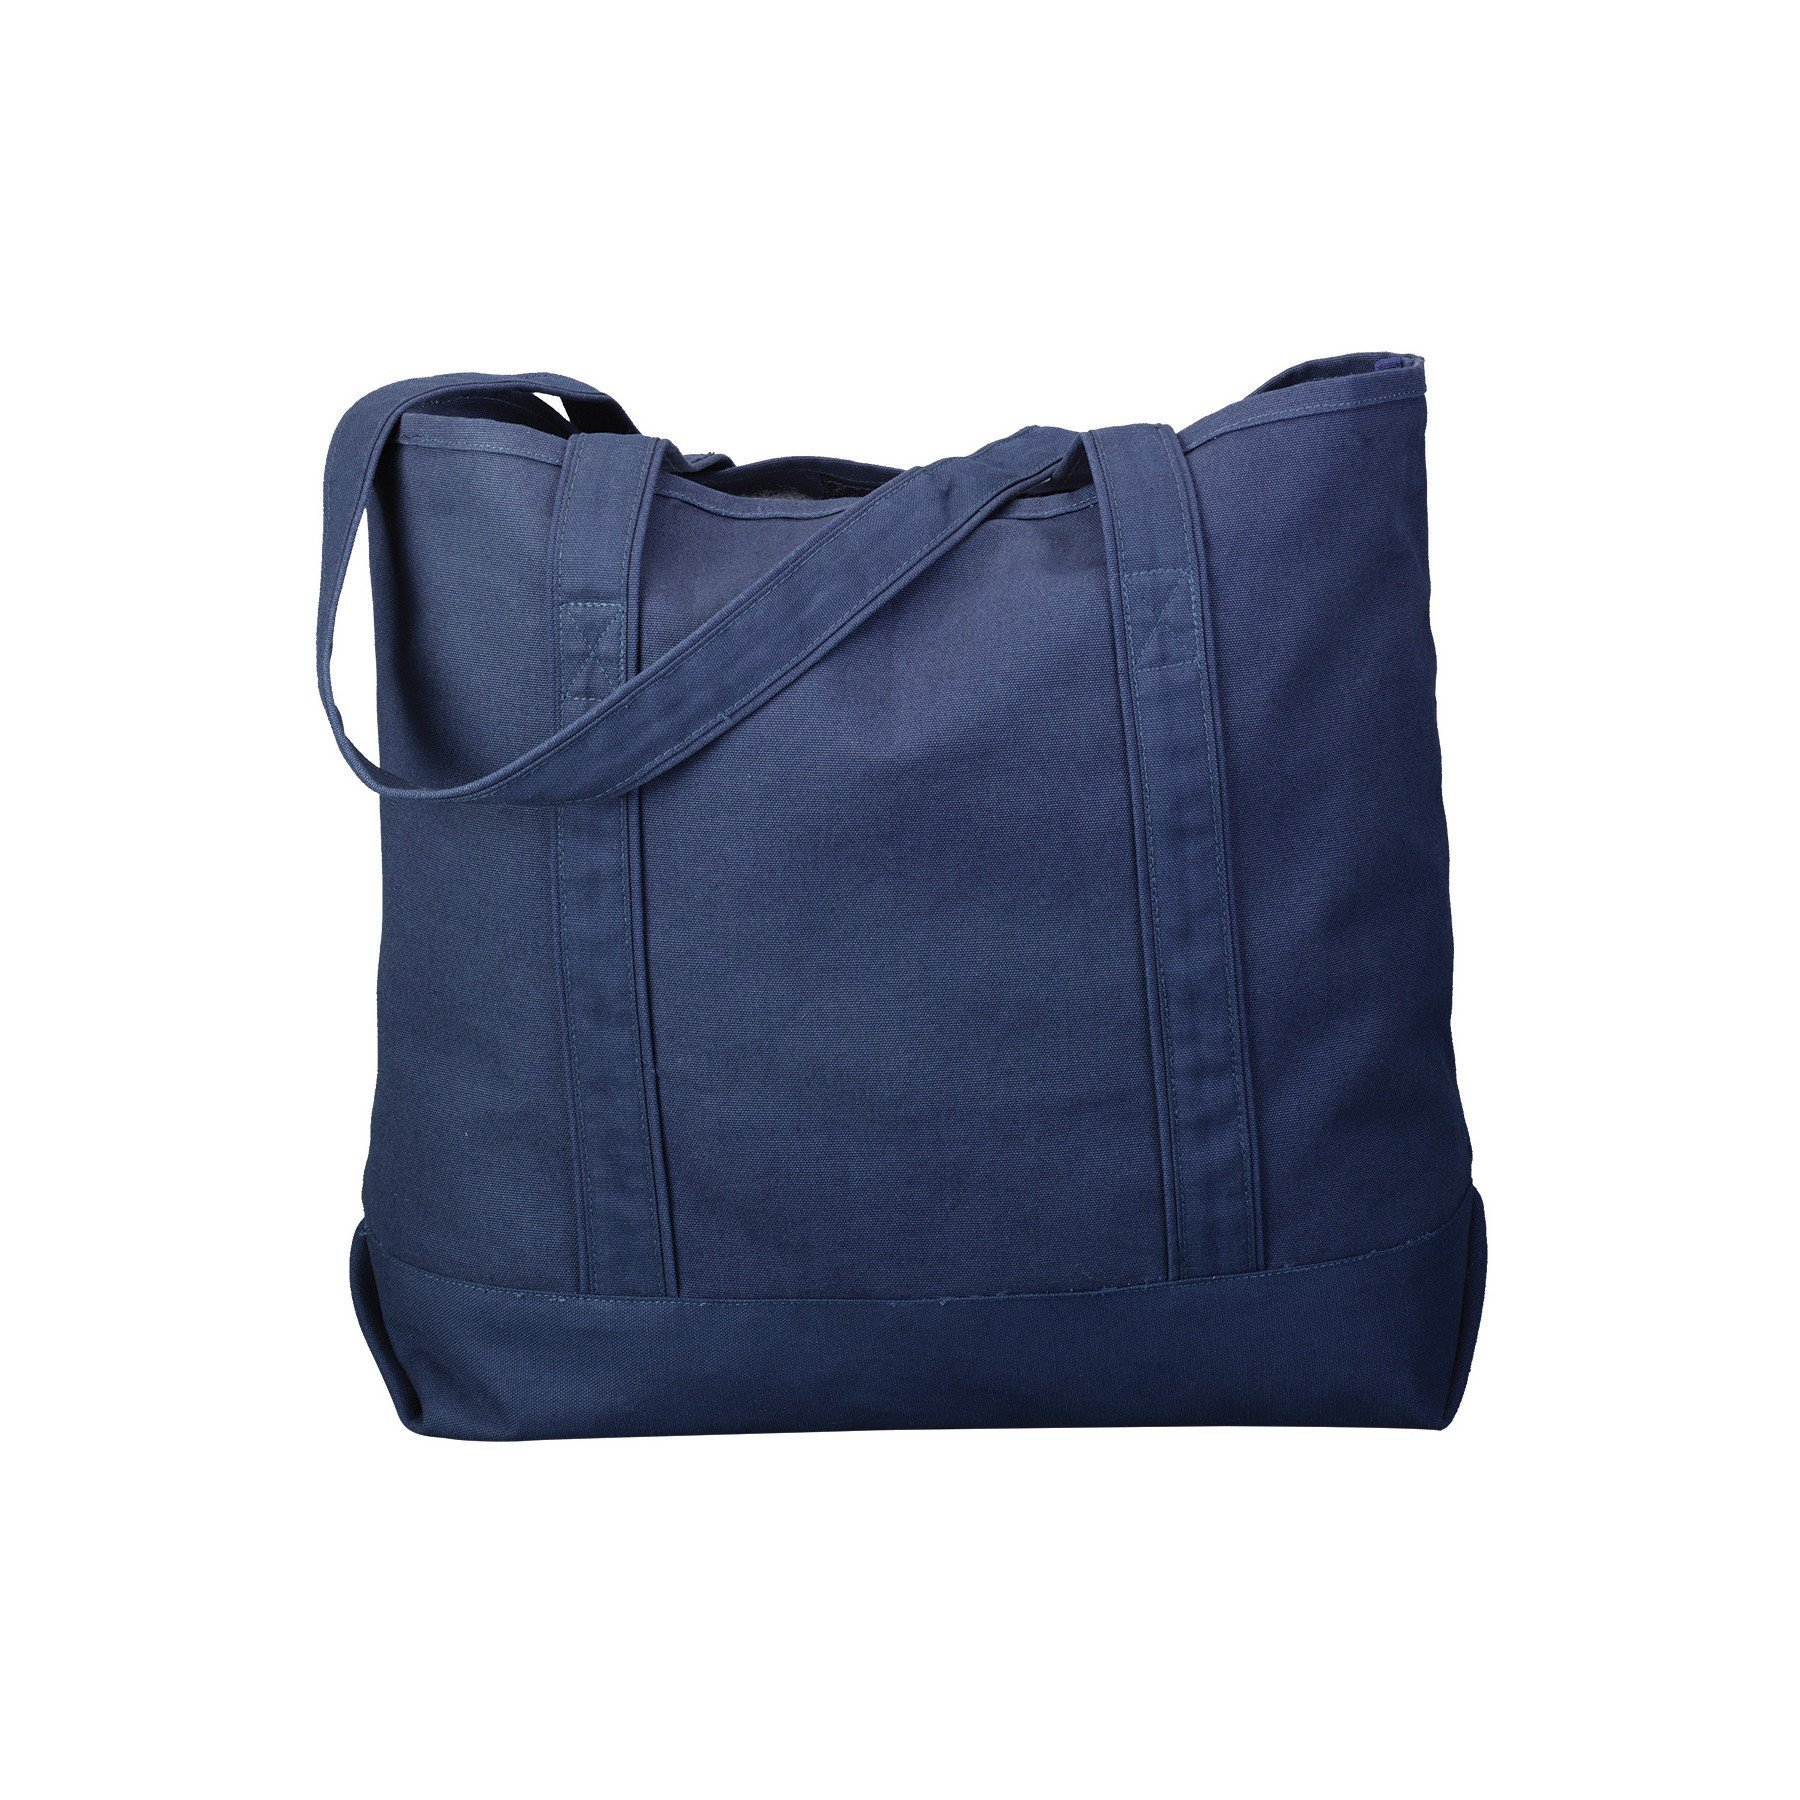 Canvas Tote Beach Bag - Strong Large Bags to Carry Beach Gear and Wet Towels. Large Open Main Compartment With Hook-and-Loop Closure and Shoulder Straps for Easy Carrying (Navy)